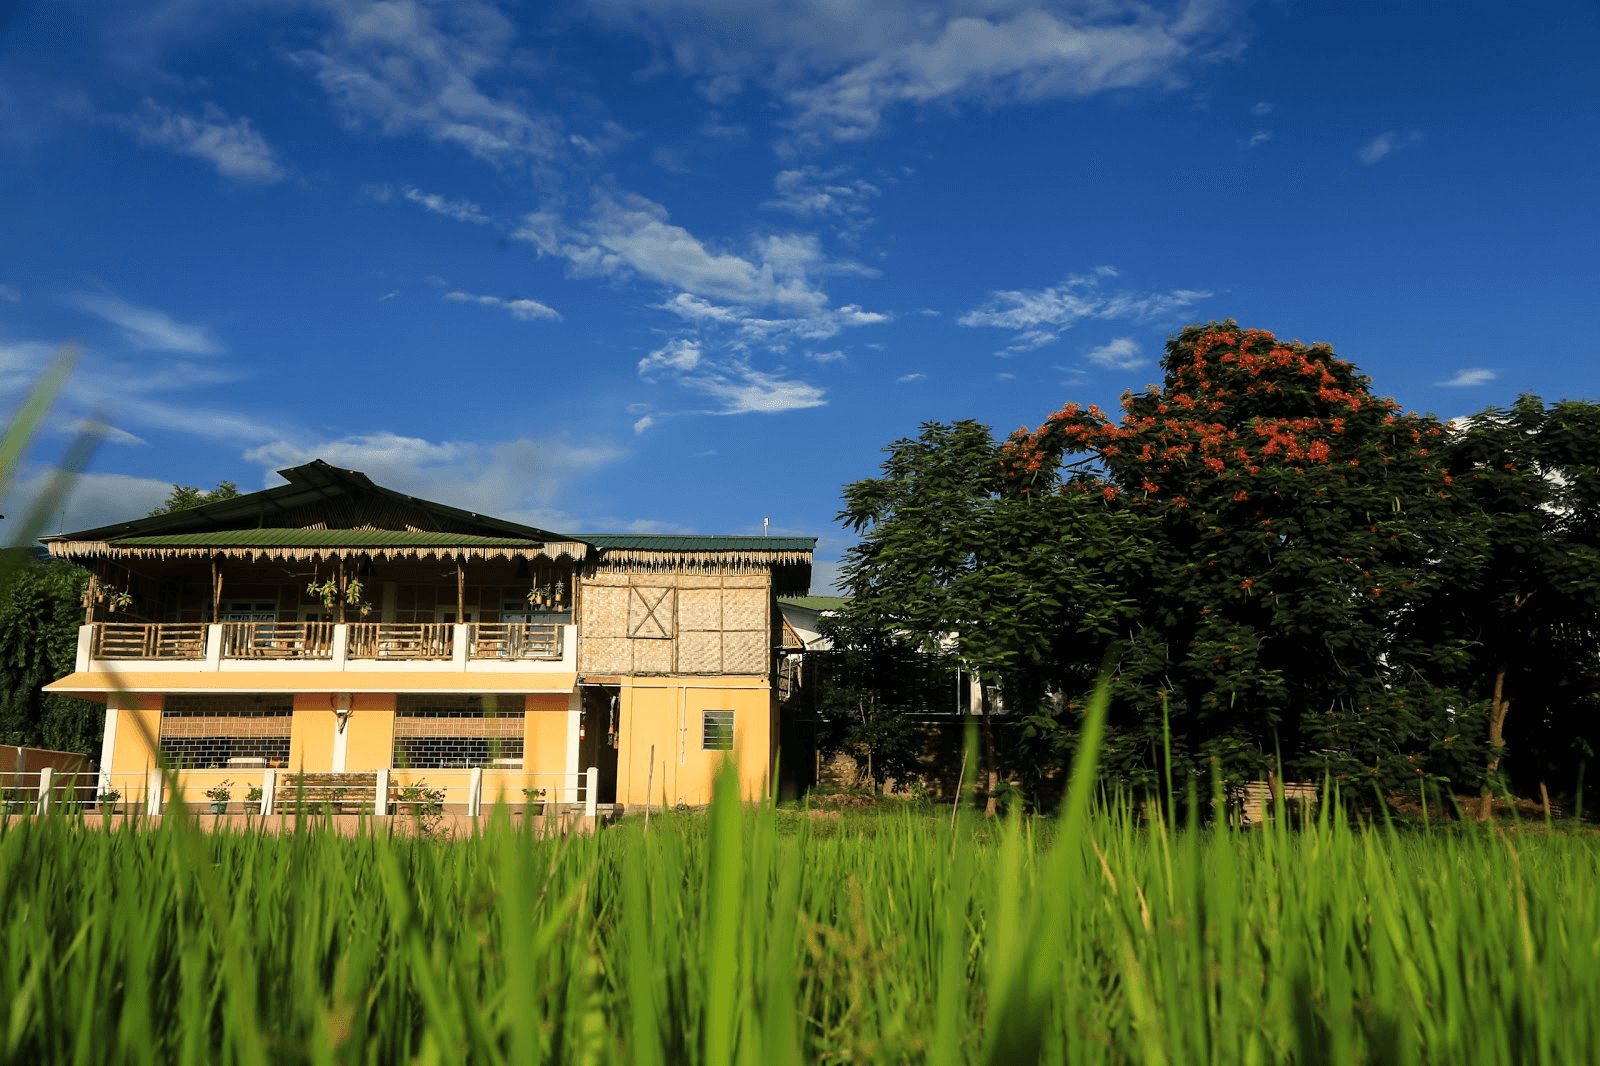 a homestay in the middle of rice fields